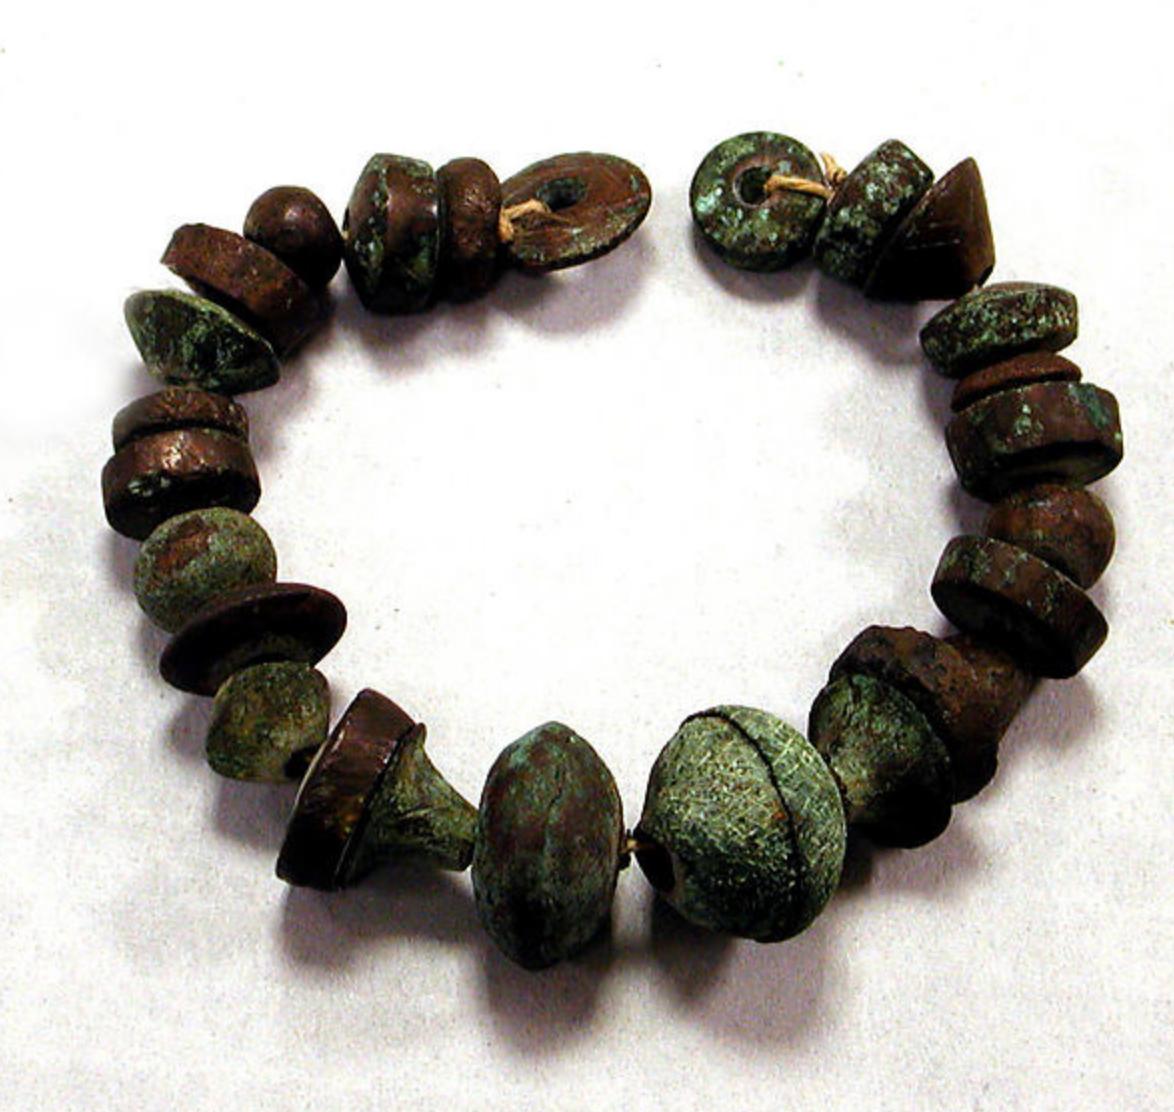 Copper and ceramic beads/whorls, 1200-1470 CE, Peruvian - The Metropolitan Museum of Art   https://www.metmuseum.org/art/collection/search/309223